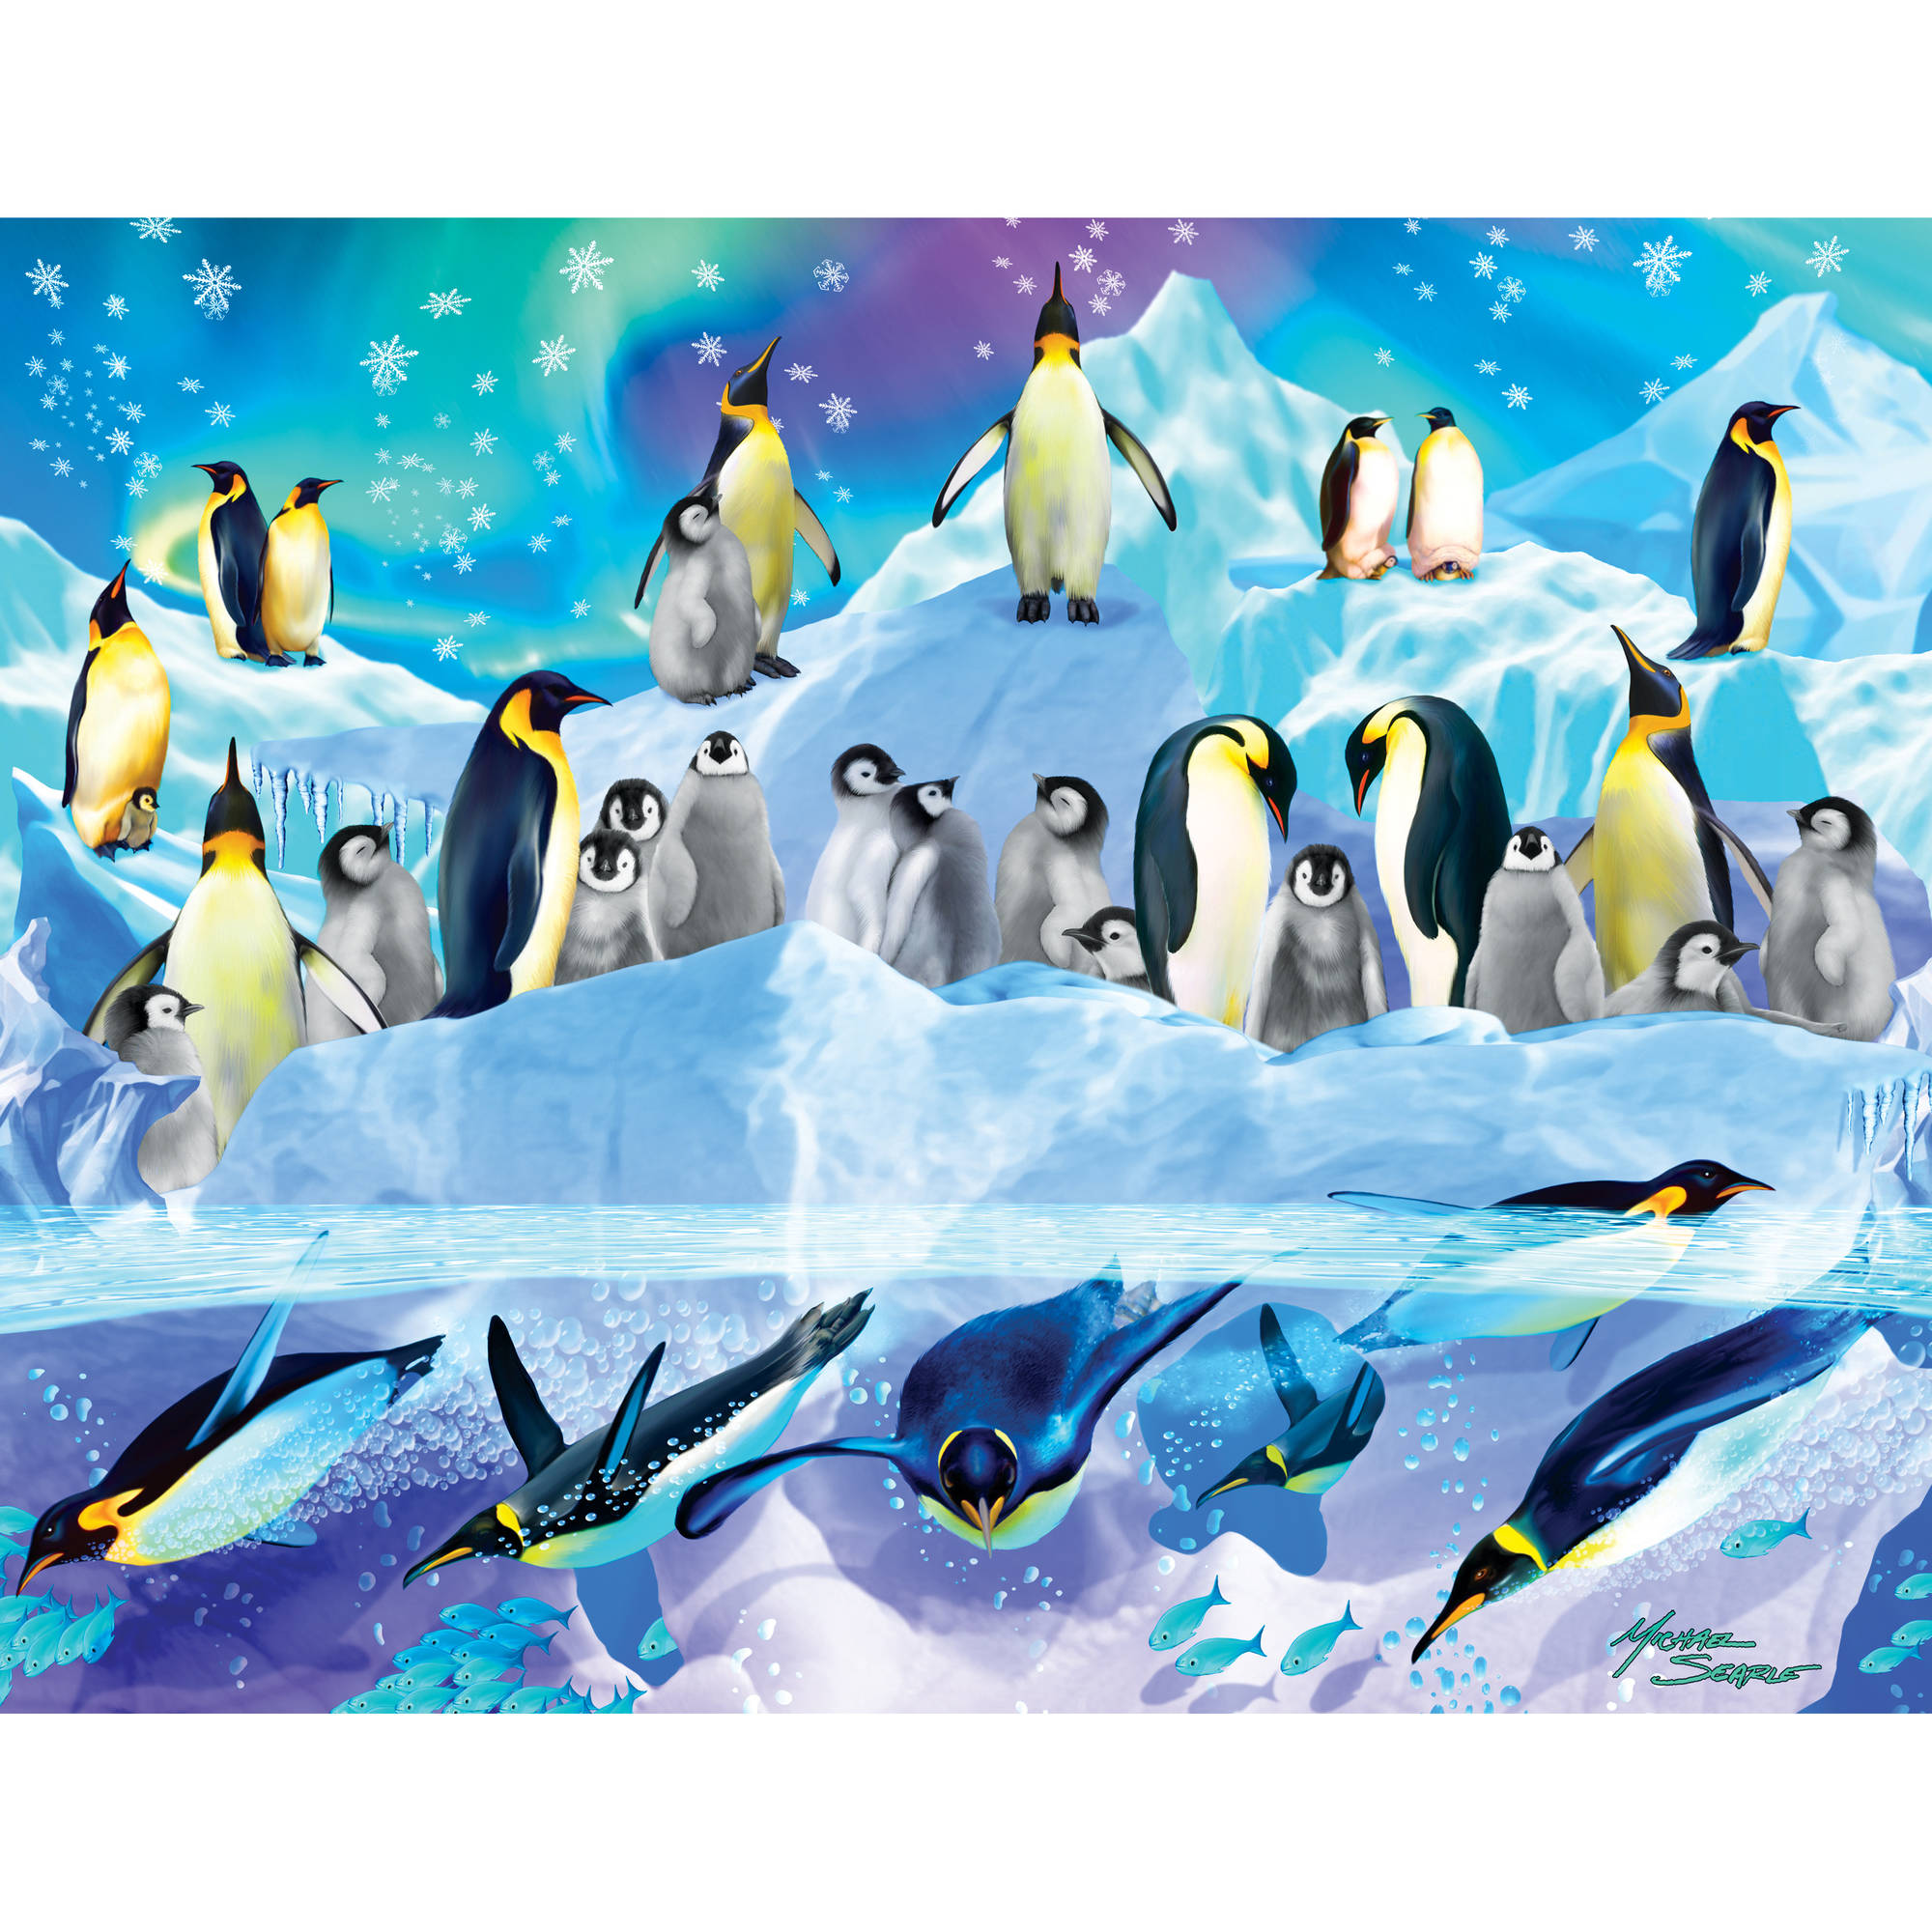 MasterPieces Penguins 100 Piece Puzzle